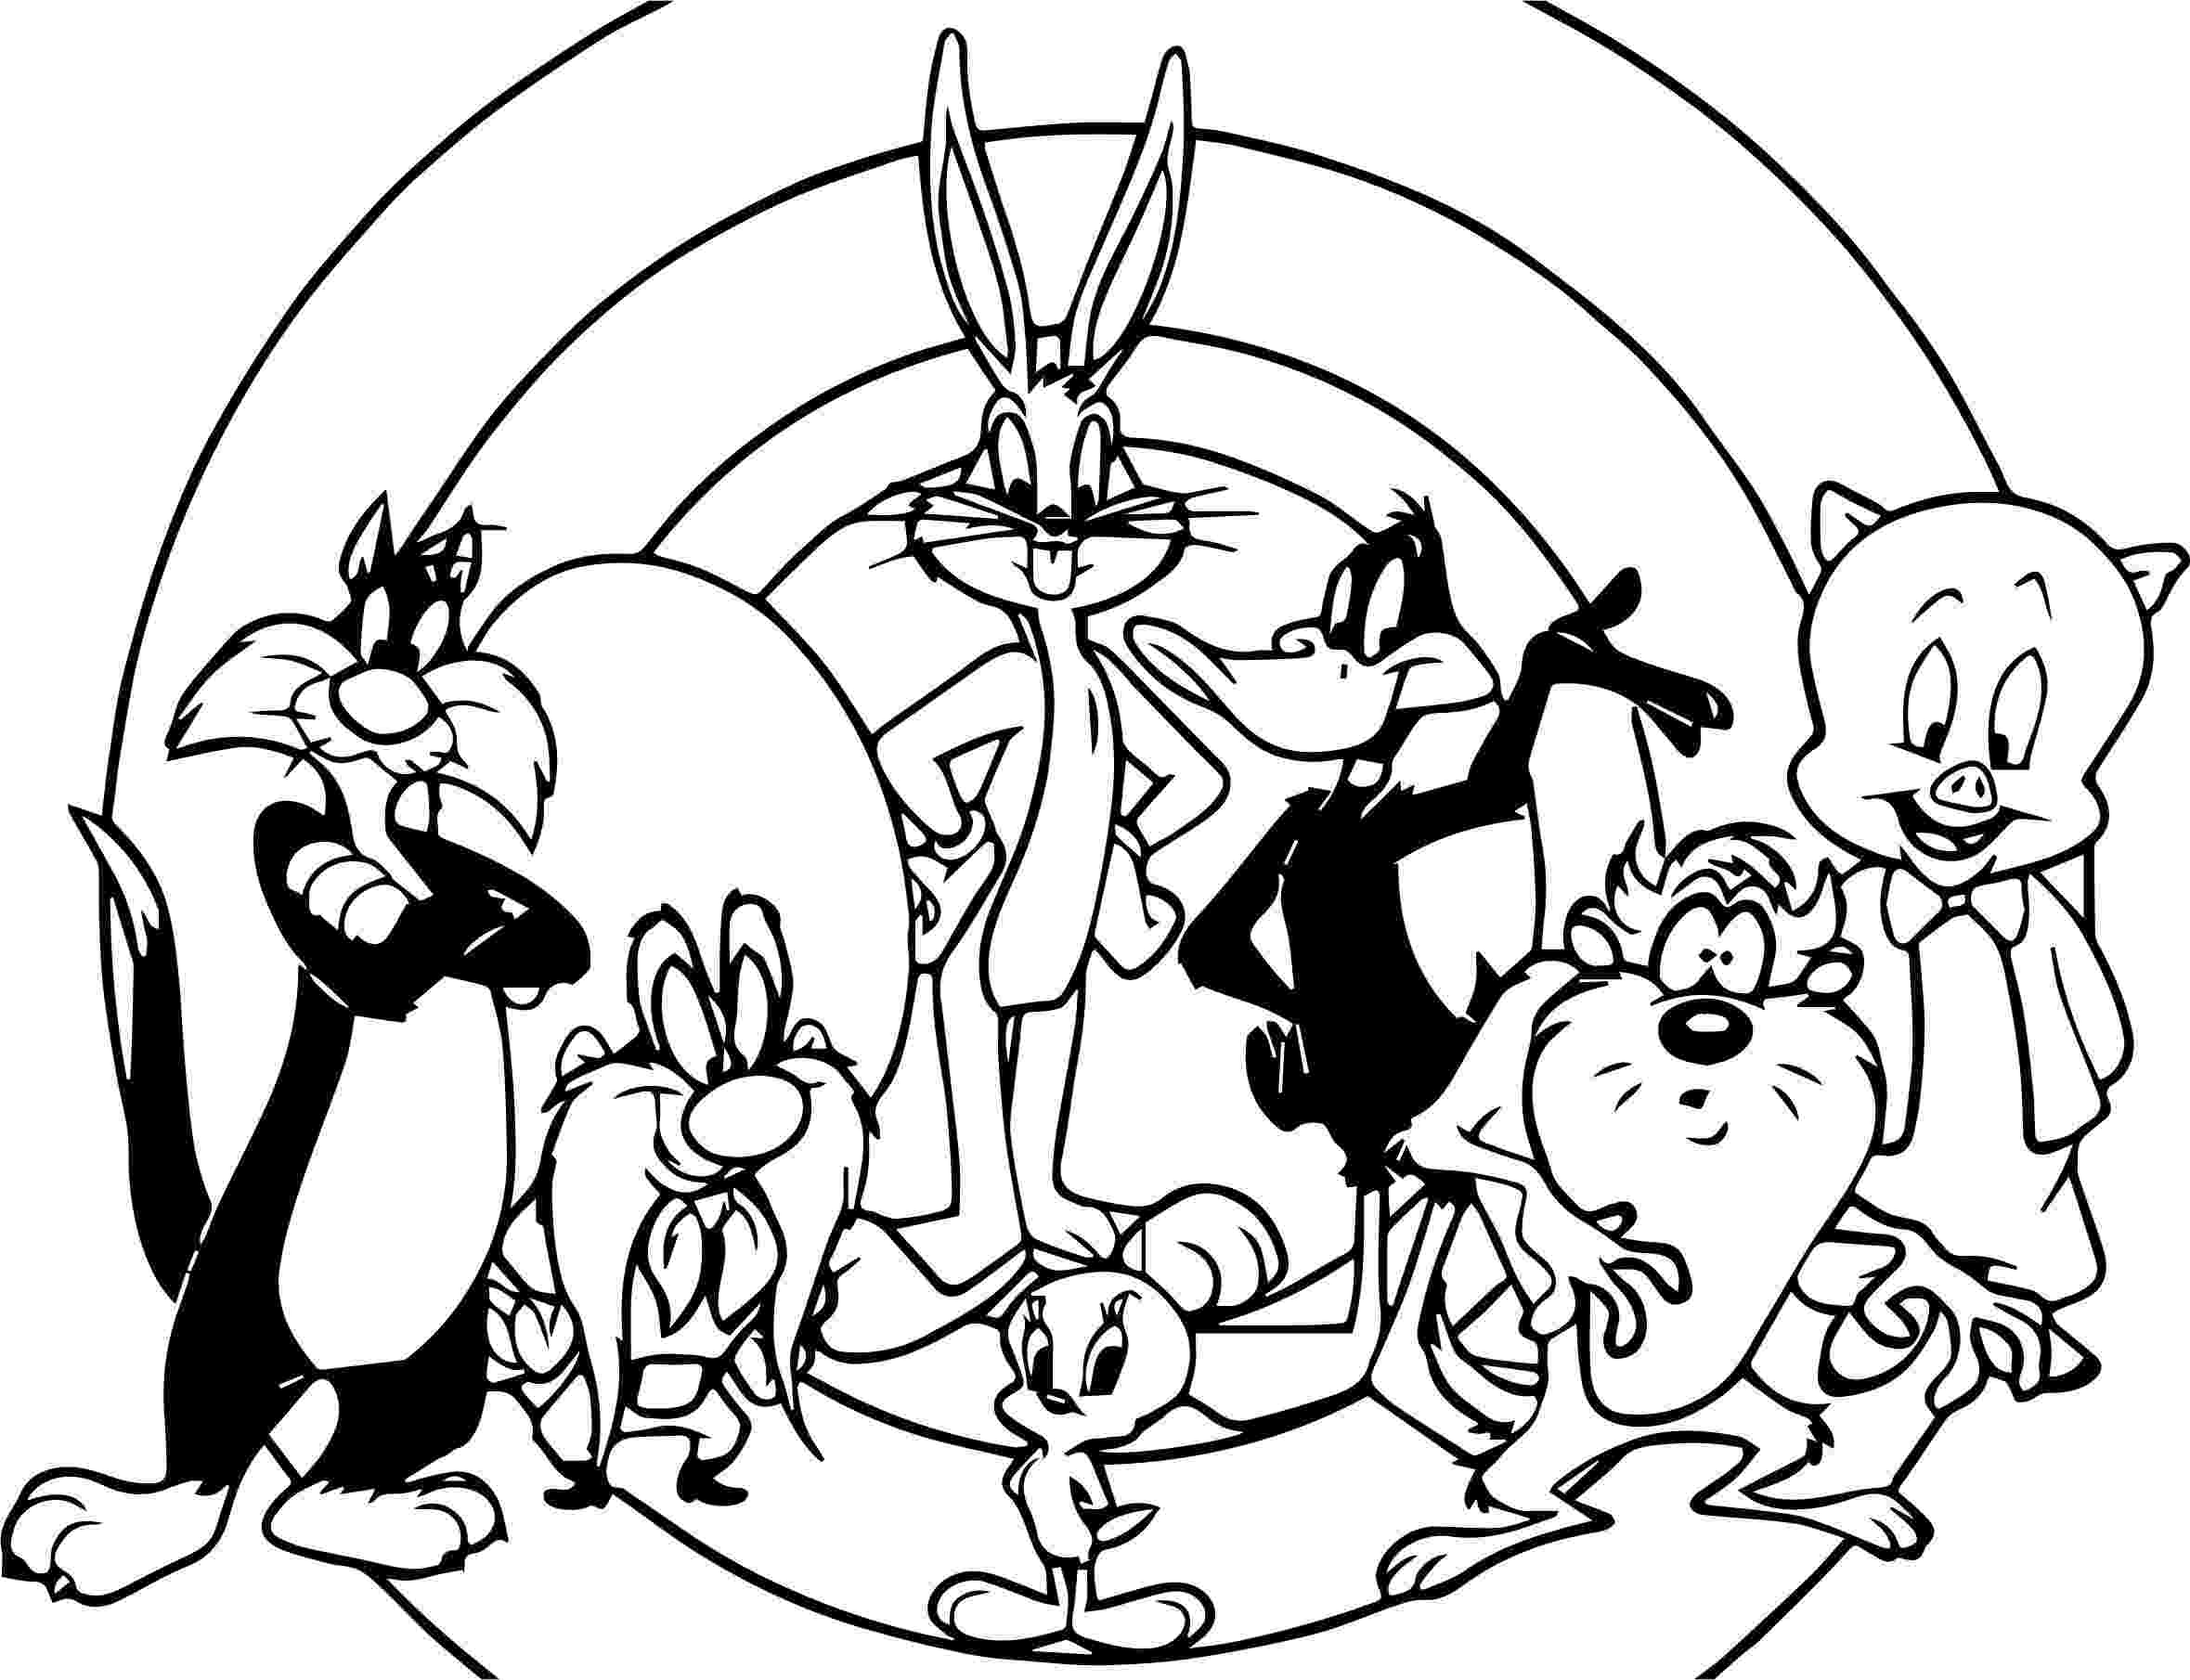 looney tunes coloring sheets looney tunes coloring pages 360coloringpages looney tunes coloring sheets